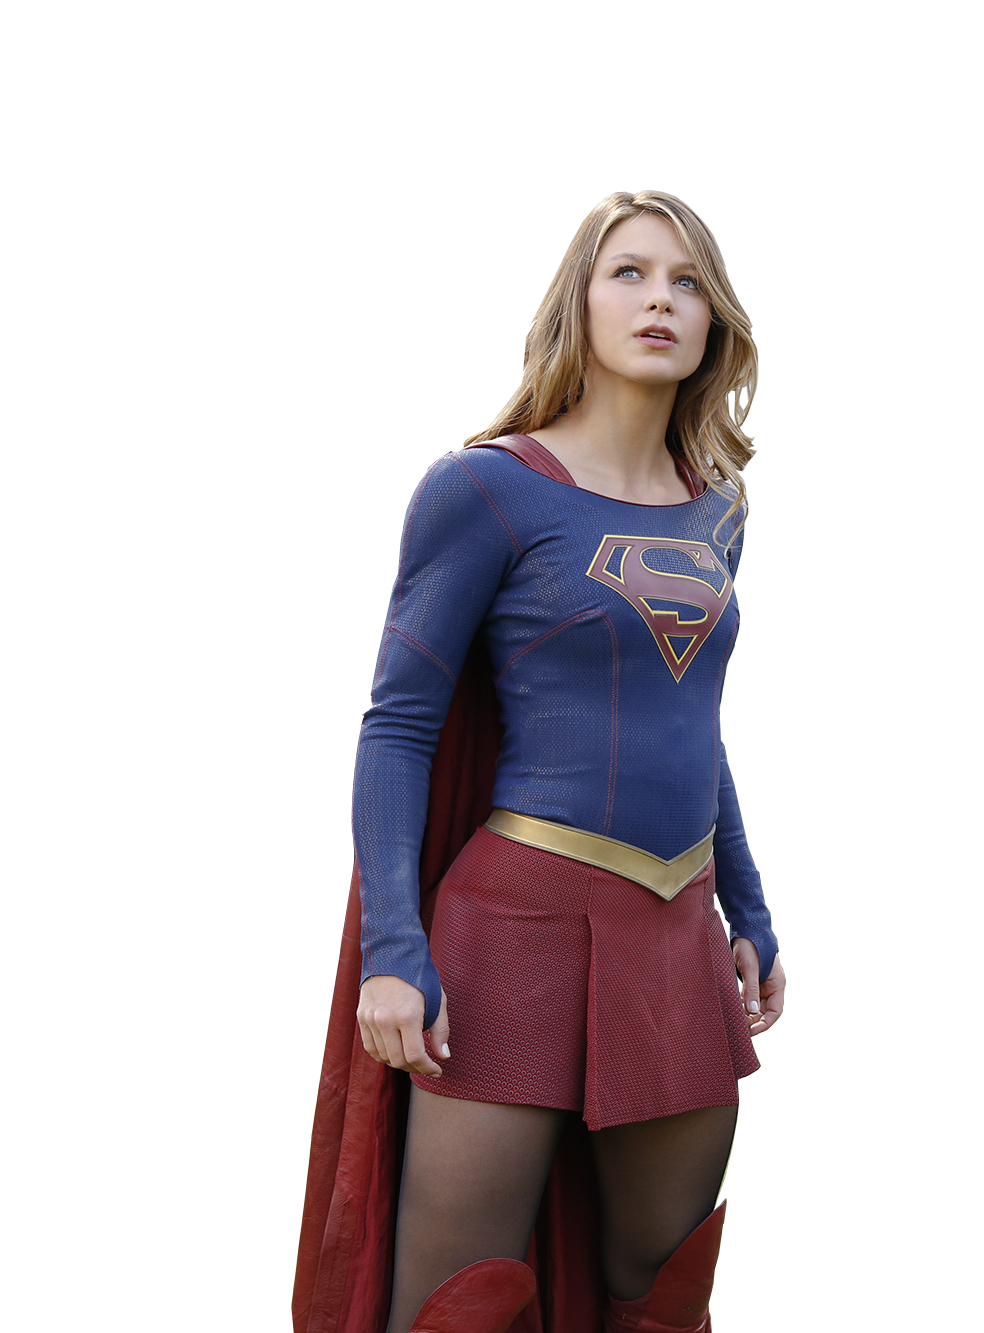 Supergirl by Buffy2ville - Supergirl PNG